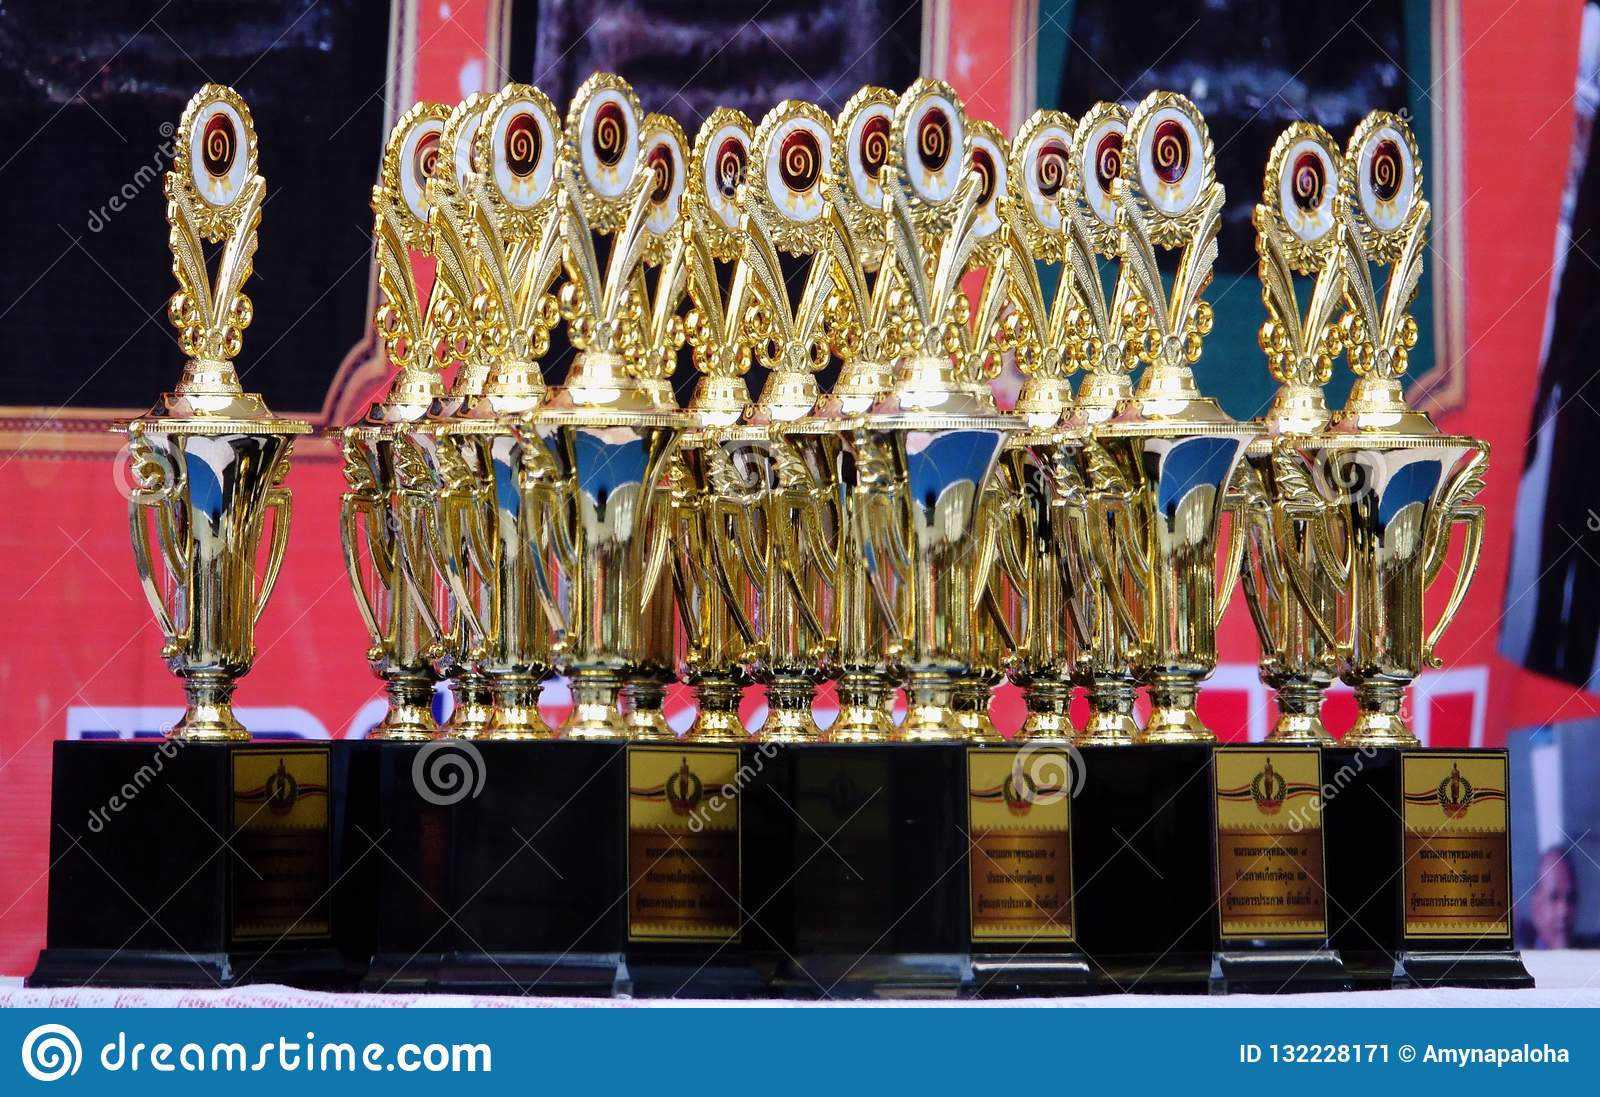 18-november-2018.LATKABANG THAILAND. Golden trophy. Prepare for the talented person and win the job